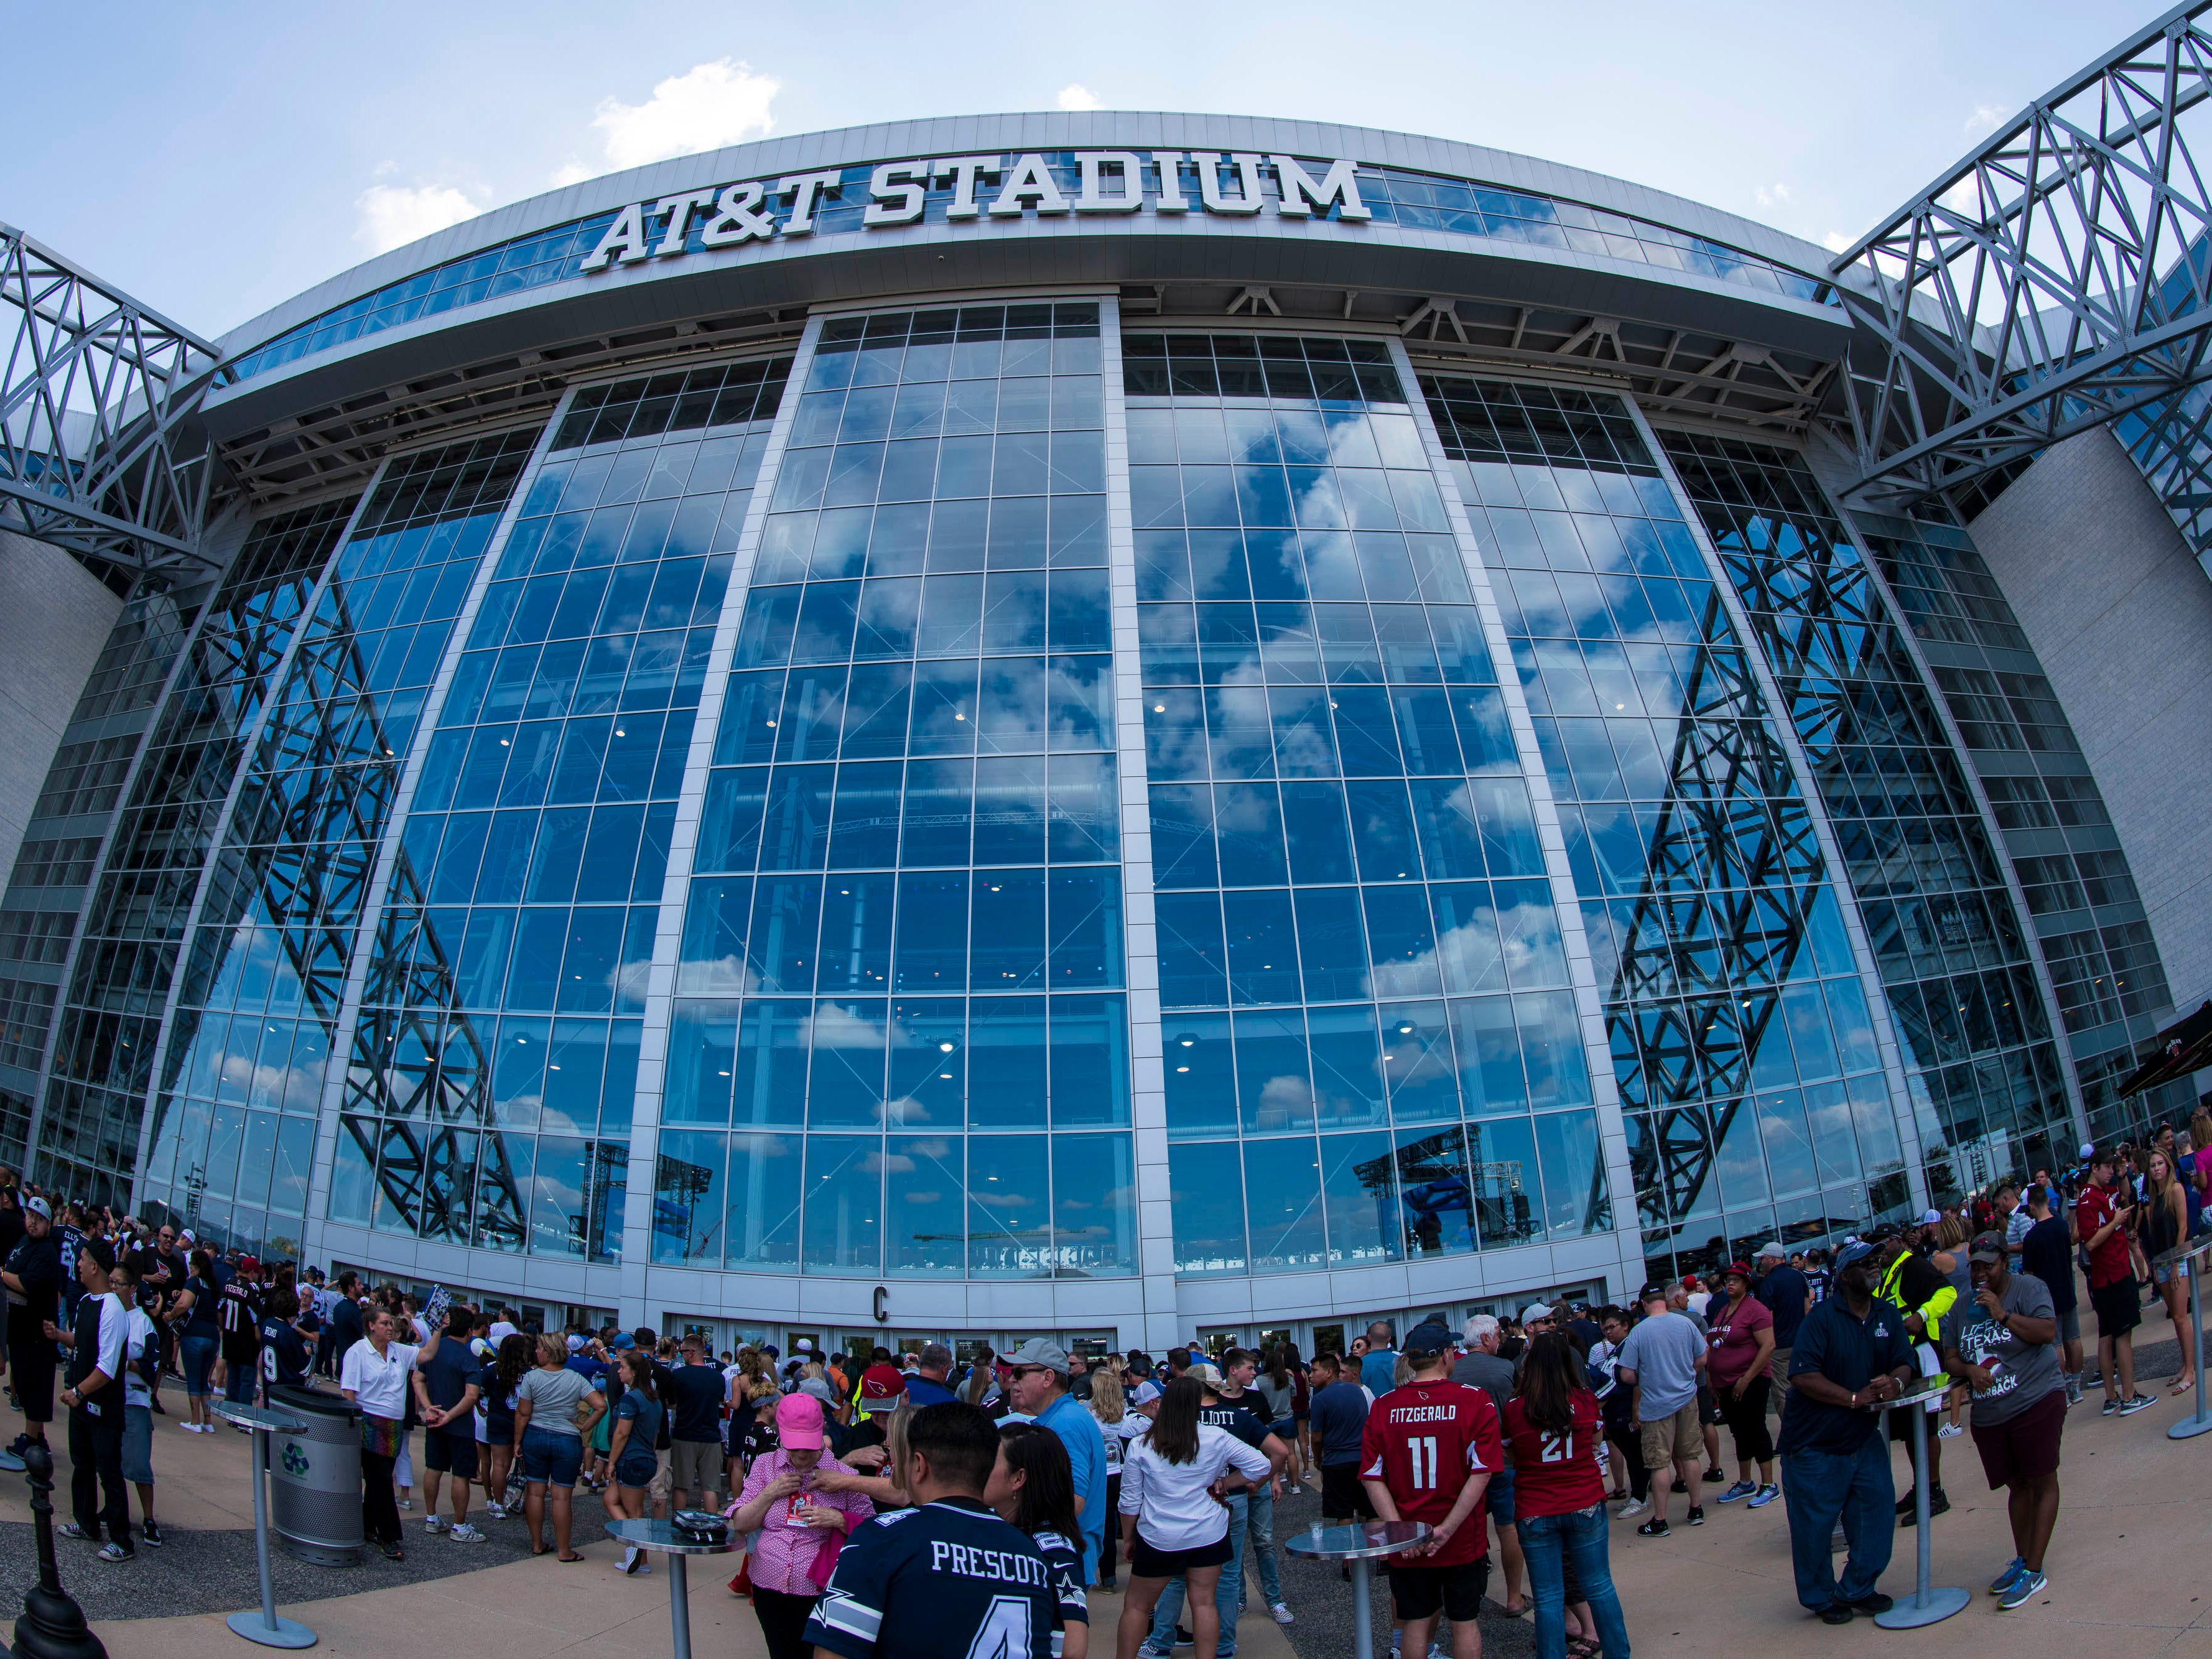 Aug 26, 2018; Arlington, TX, USA; A view of the fans waiting to enter the stadium before the game between the Dallas Cowboys and the Arizona Cardinals at AT&T Stadium. Mandatory Credit: Jerome Miron-USA TODAY Sports